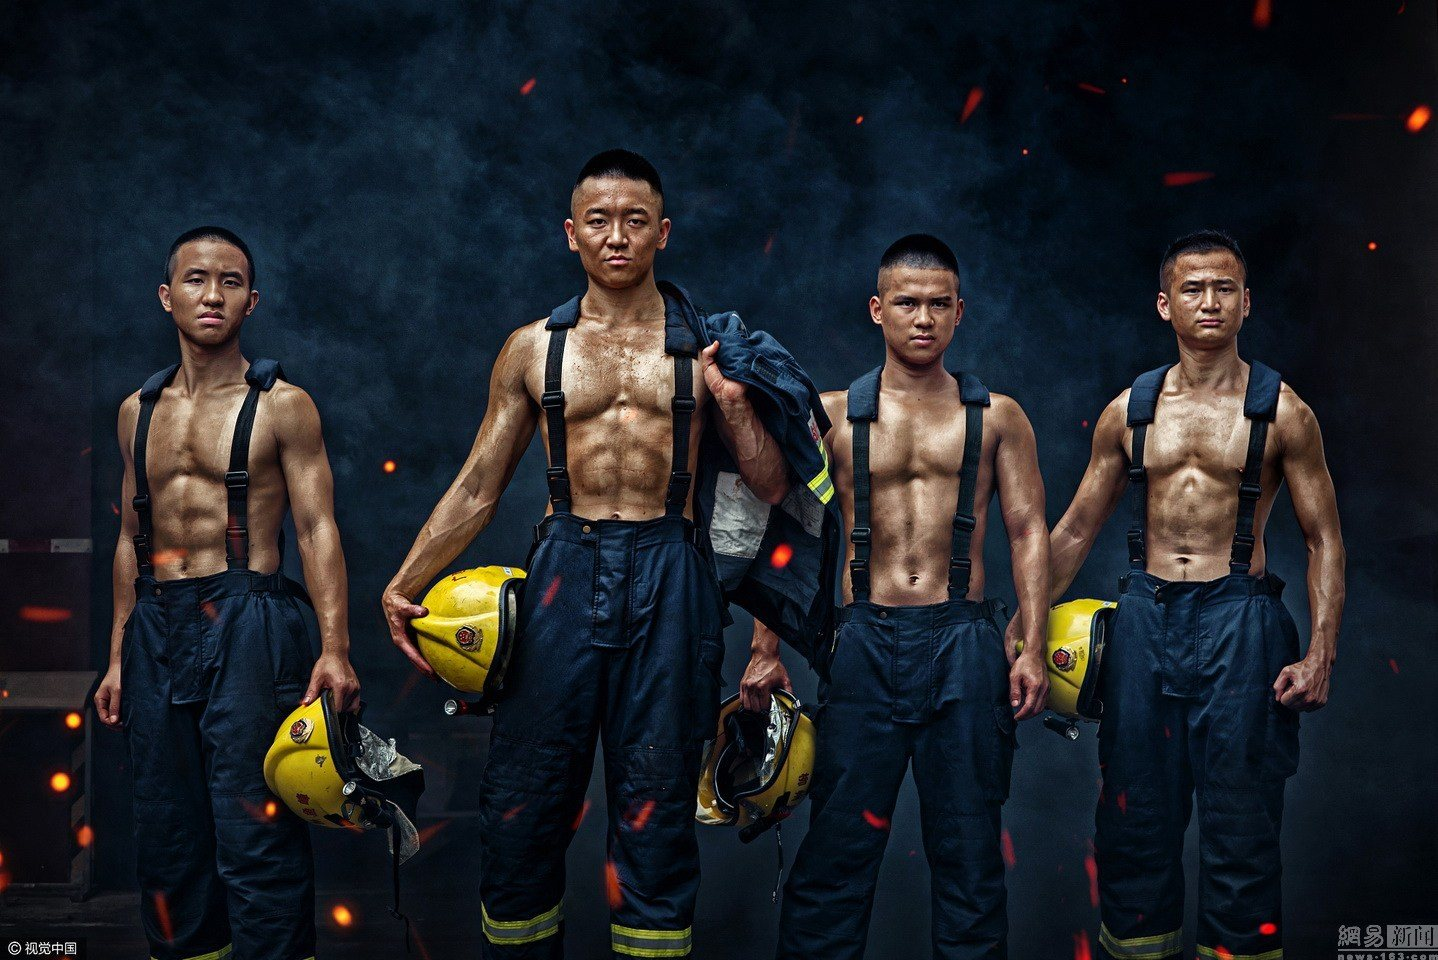 These Hunky Firefighters Will Make You Want To Burn Your House Down